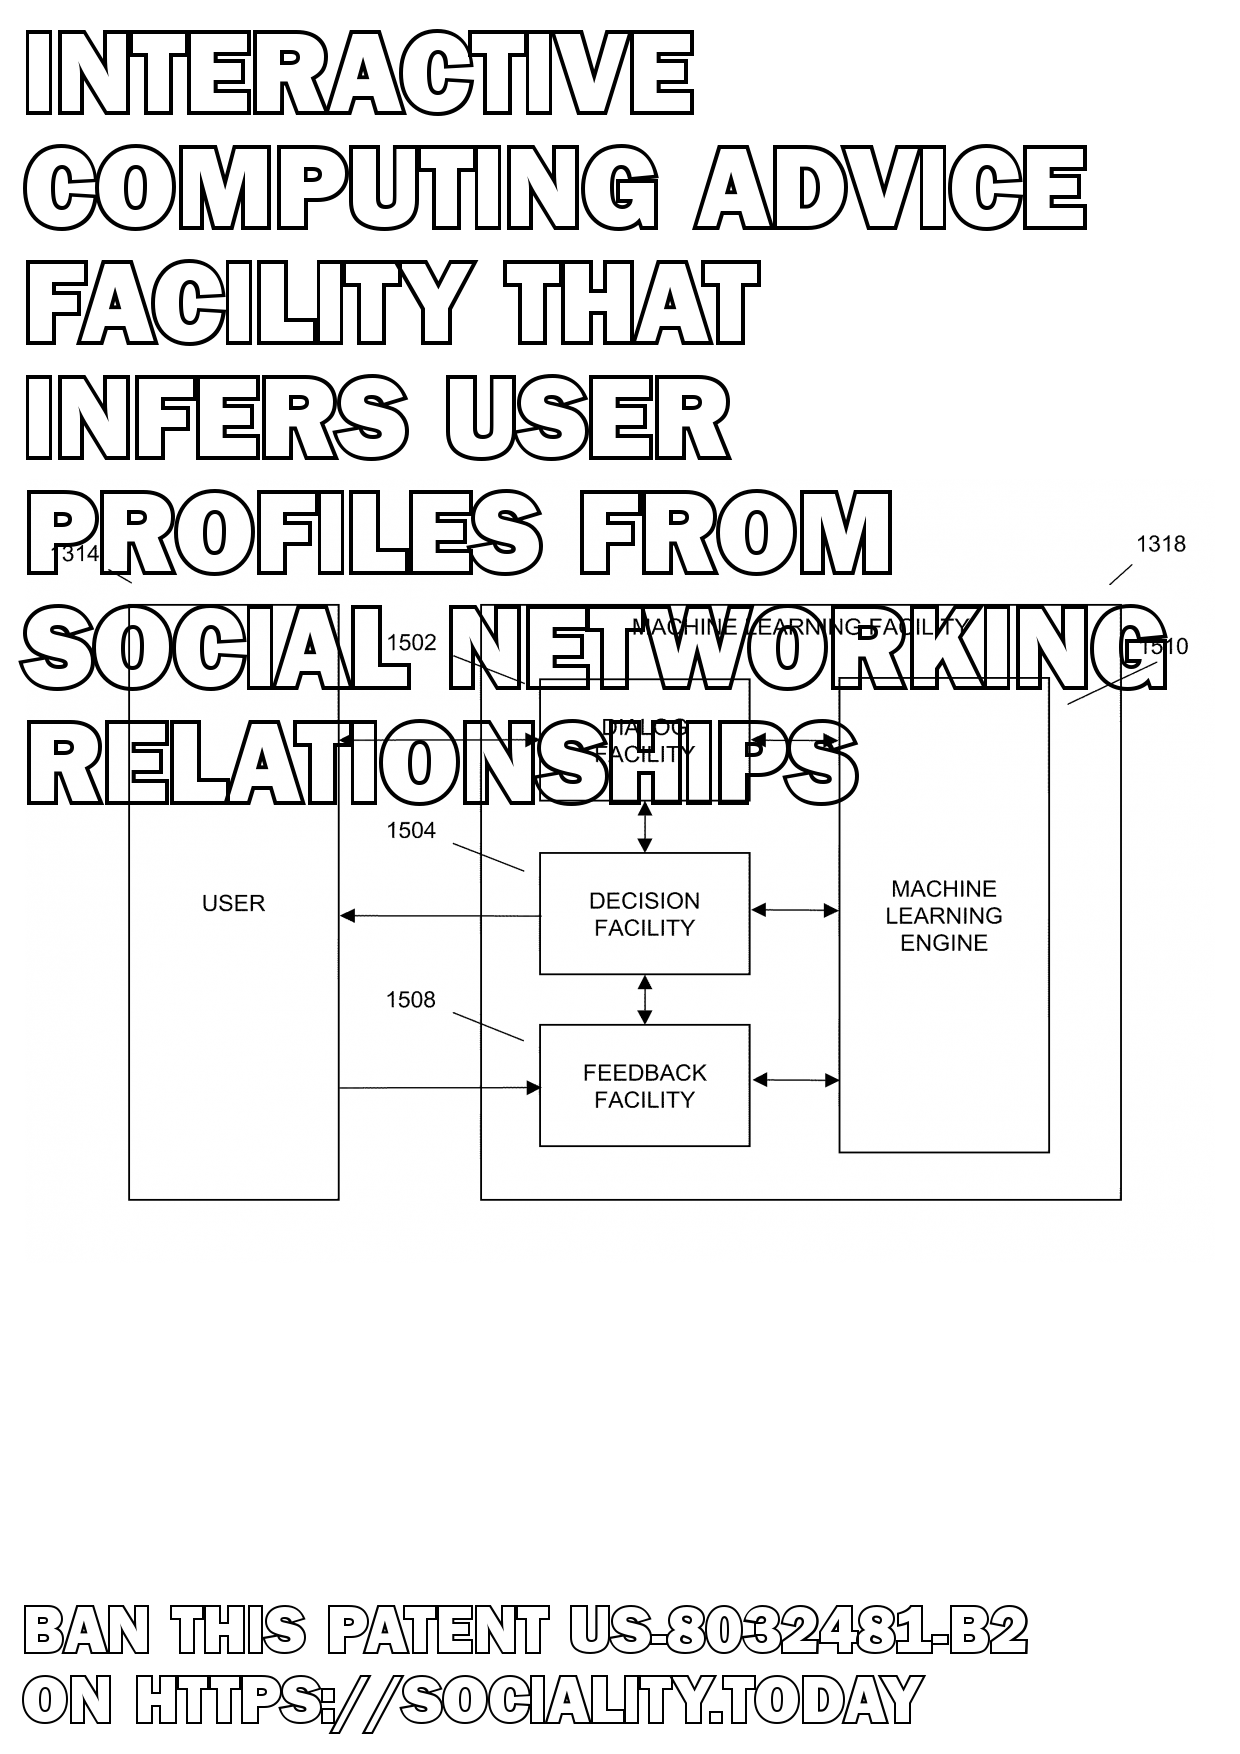 Interactive computing advice facility that infers user profiles from social networking relationships  - US-8032481-B2